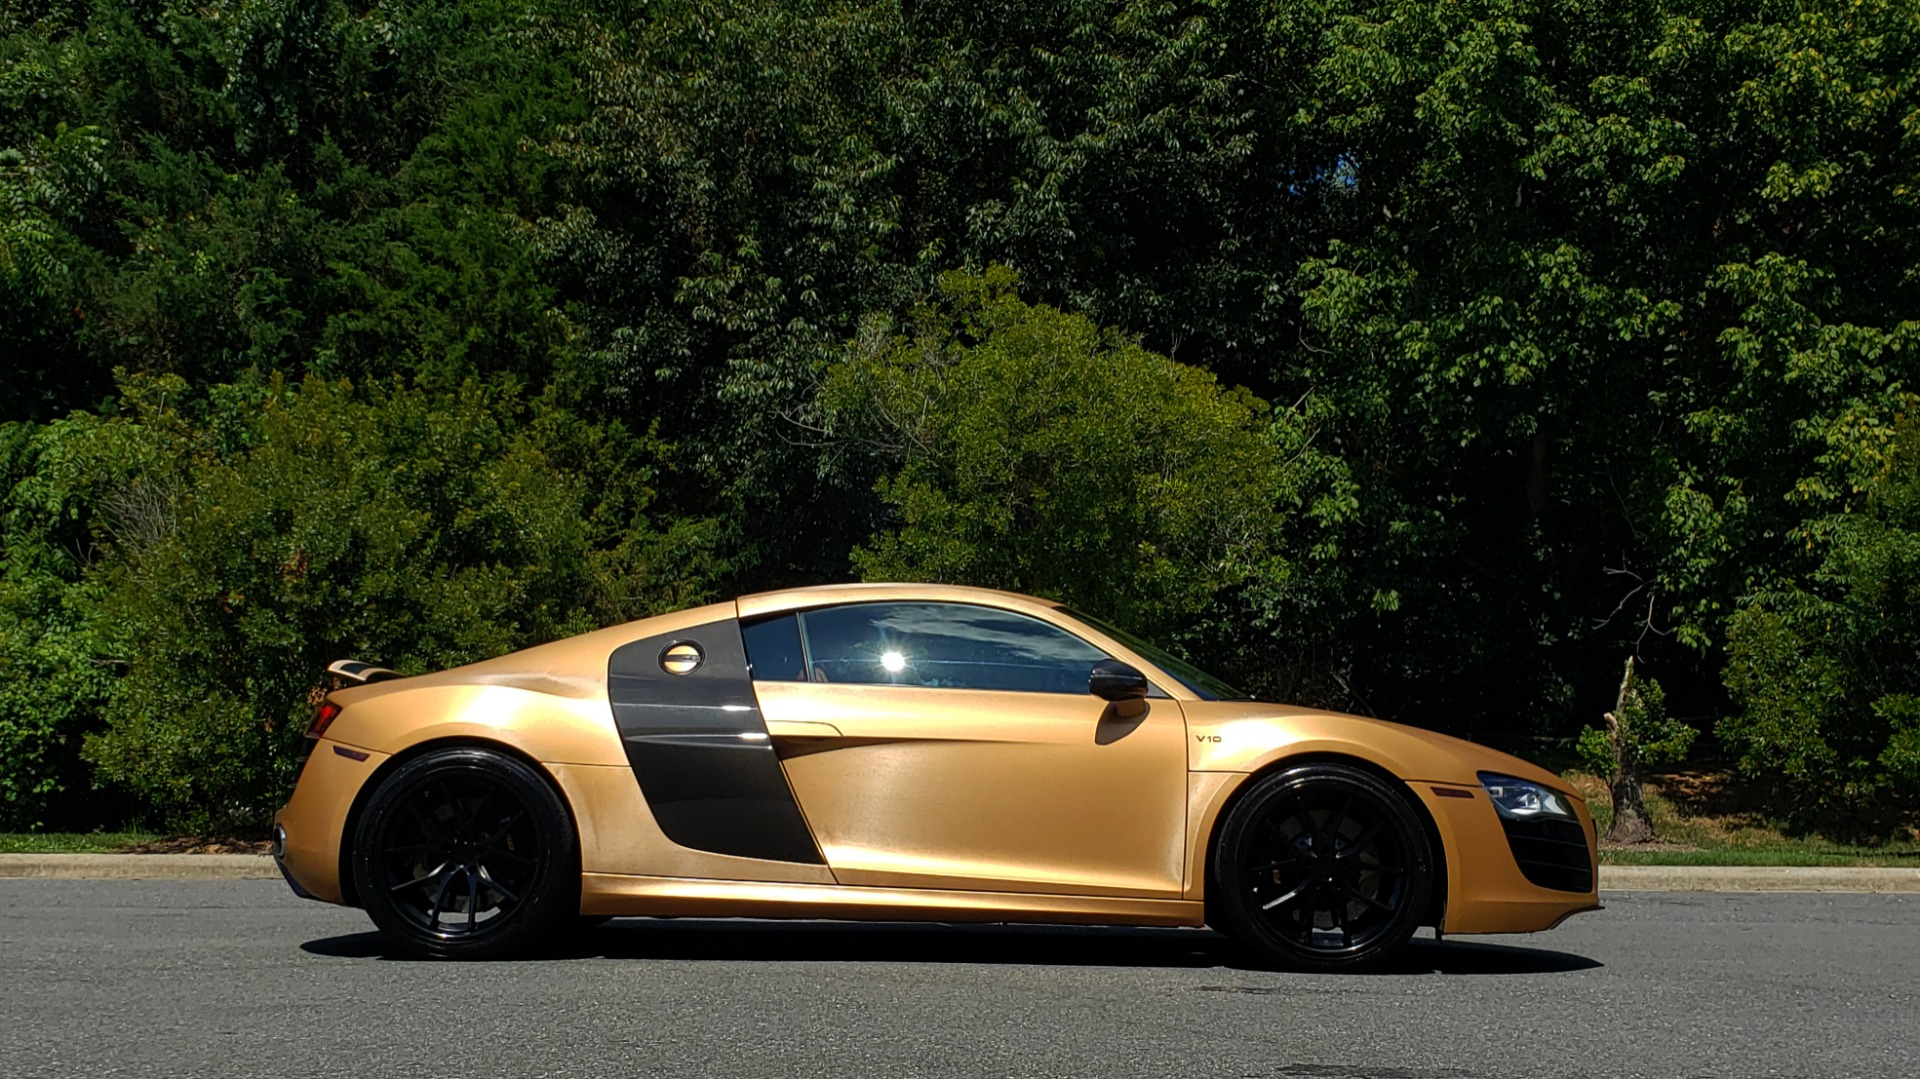 Used 2012 Audi R8 5.2L V10 / AWD / COUPE / NAV / 6-SPD AUTO / CUSTOM WRAP for sale Sold at Formula Imports in Charlotte NC 28227 9